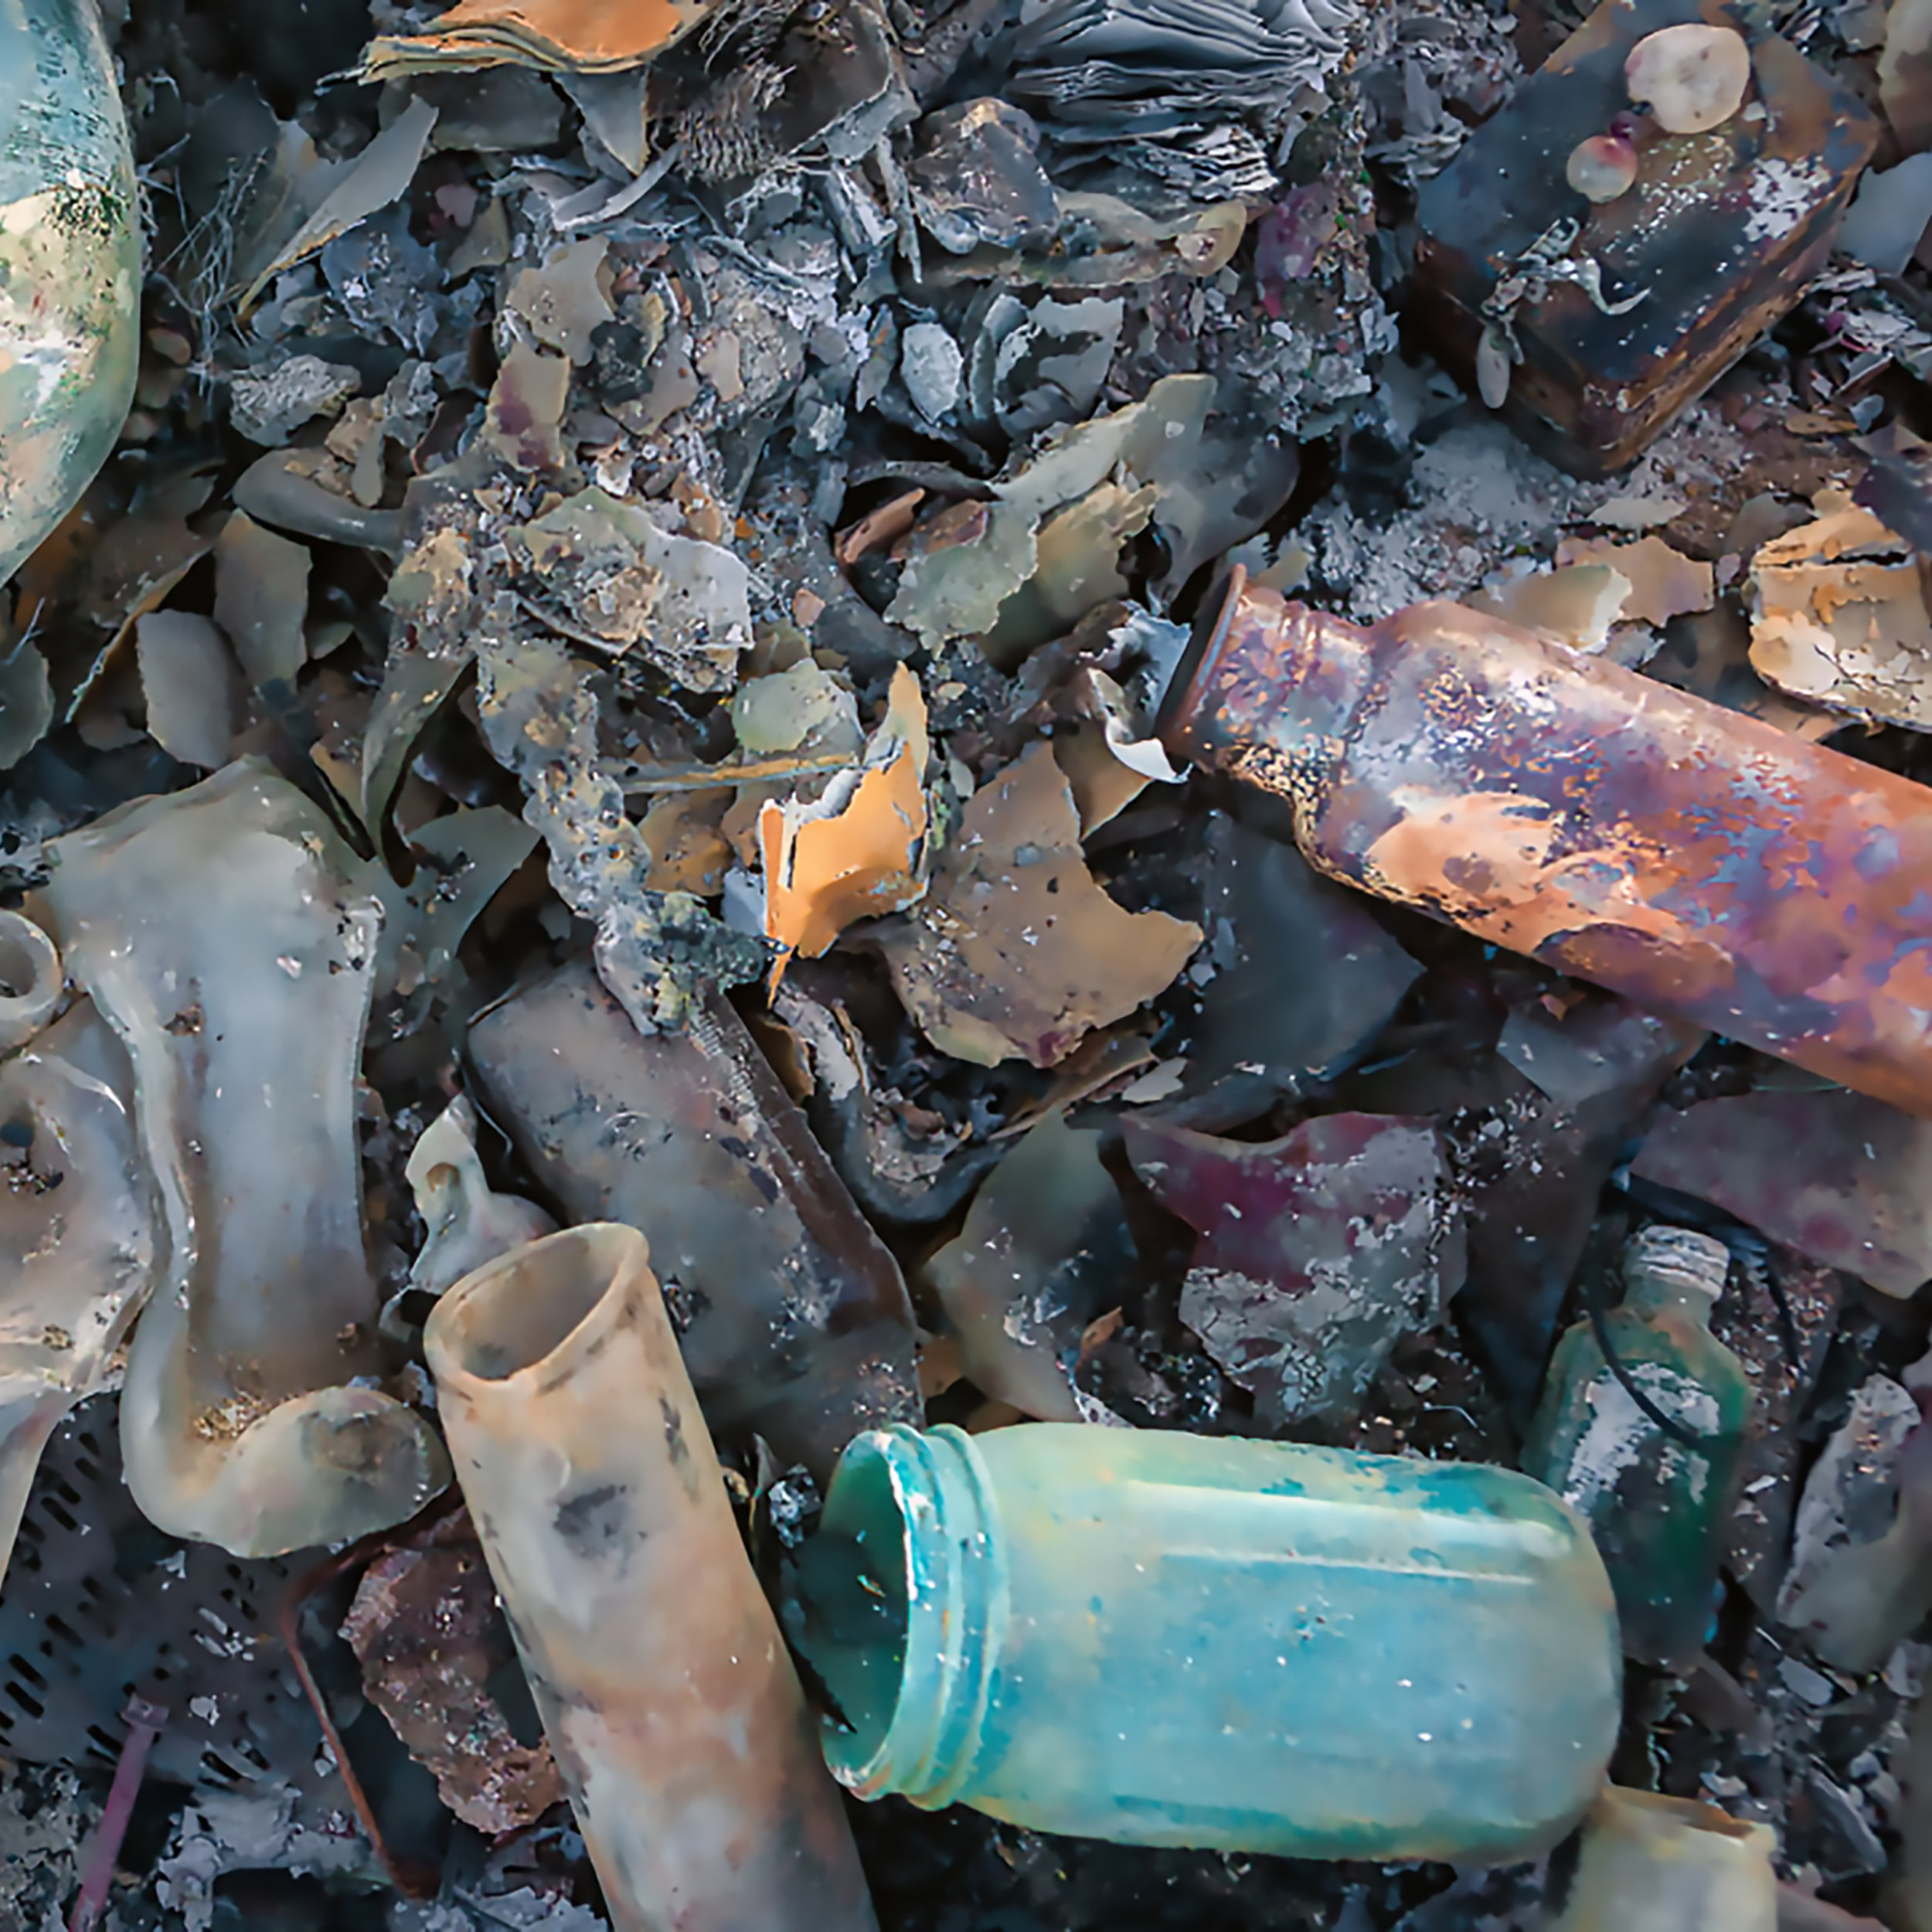 Photographer  Jonathan Clark , a friend and campmate, captured this magical image of post-burn detritus.